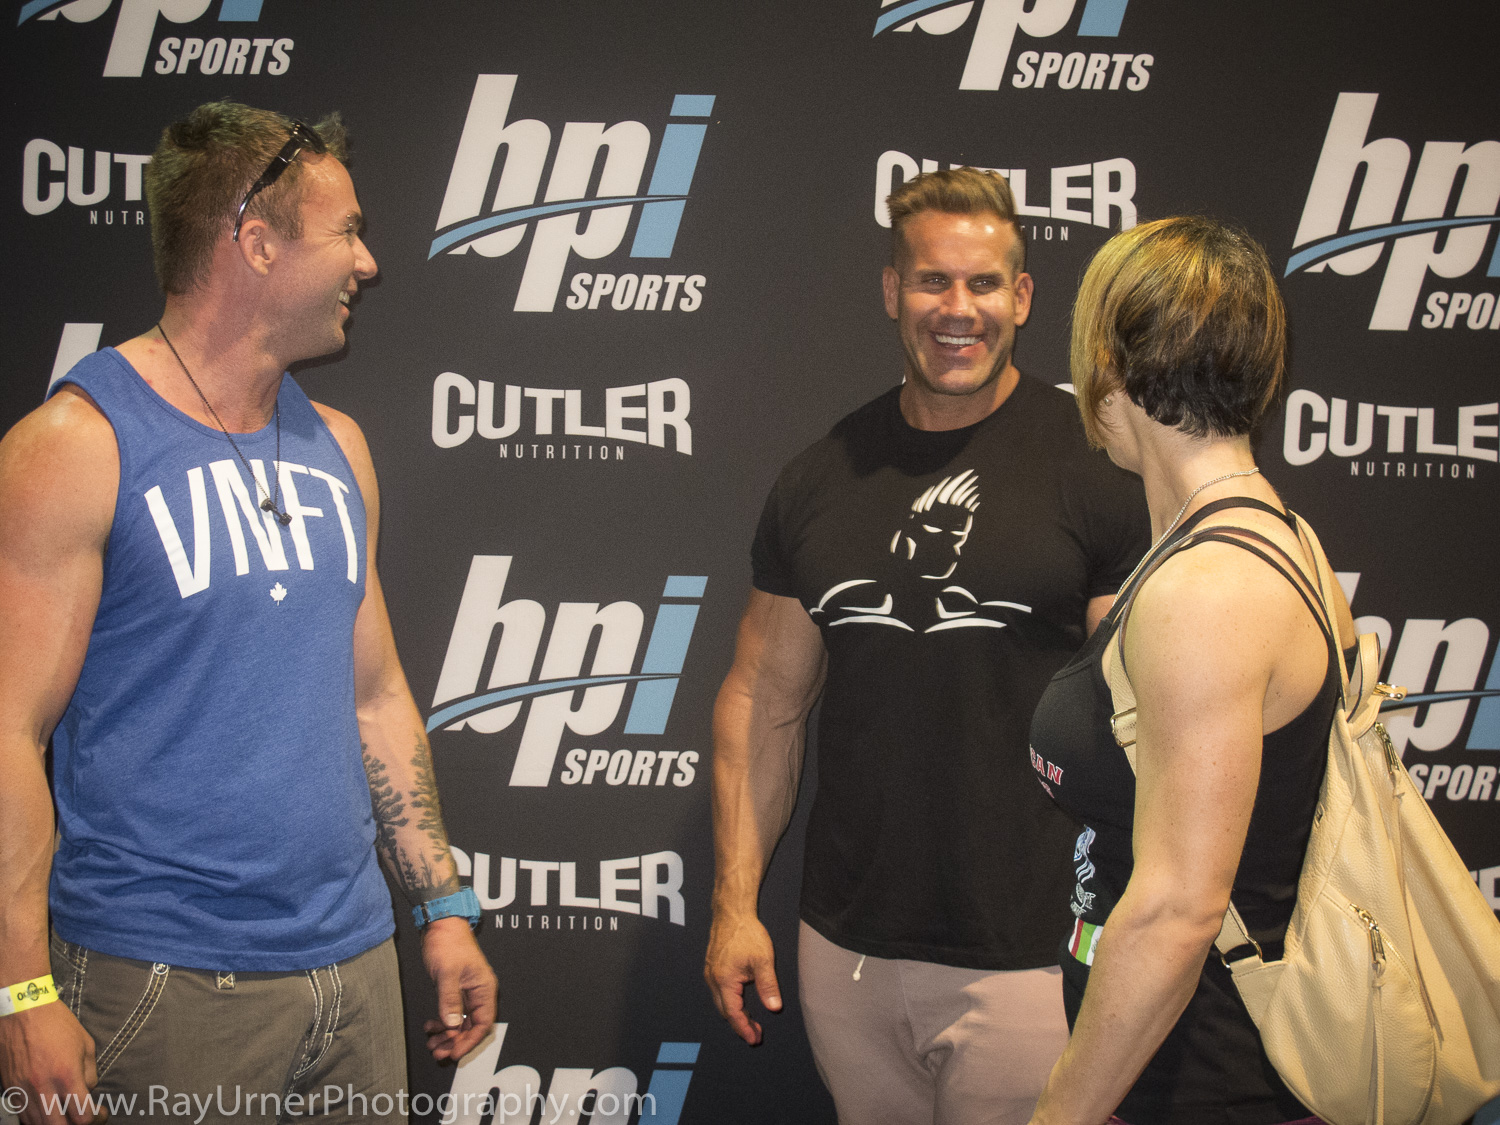 Ray, Mandy, and Jay Cutler - Olympia Expo 2017